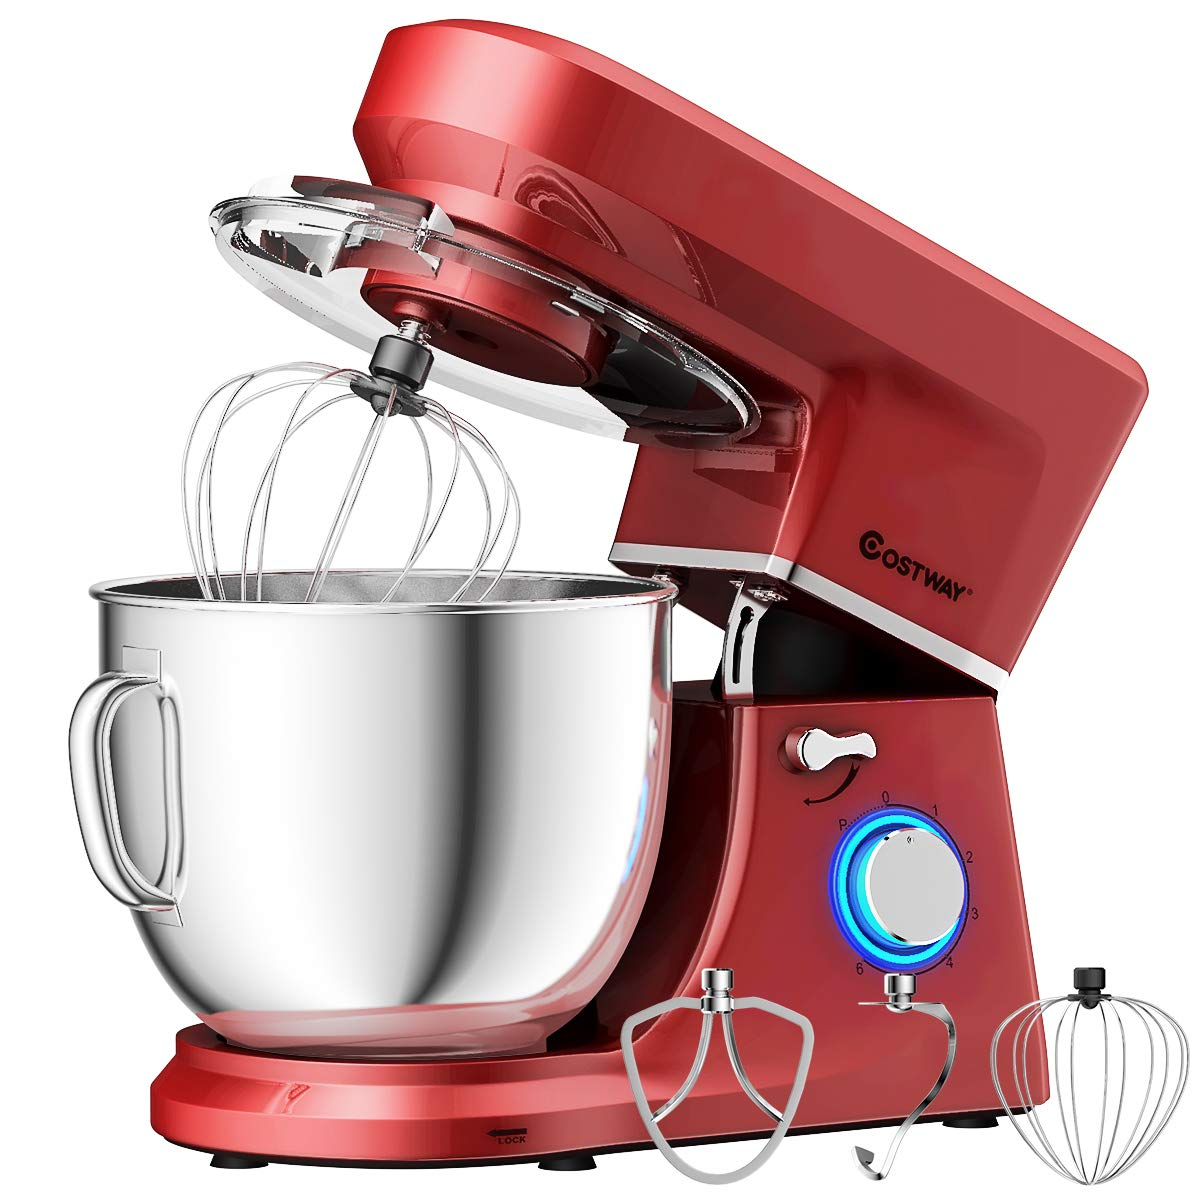 COSTWAY Stand Mixer, 660W Tilt-head Electric Kitchen Food Mixer with 6-Speed Control, 7.5-Quart Stainless Steel Bowl, Dough Hook, Beater, Whisk (Red-update) by COSTWAY (Image #1)